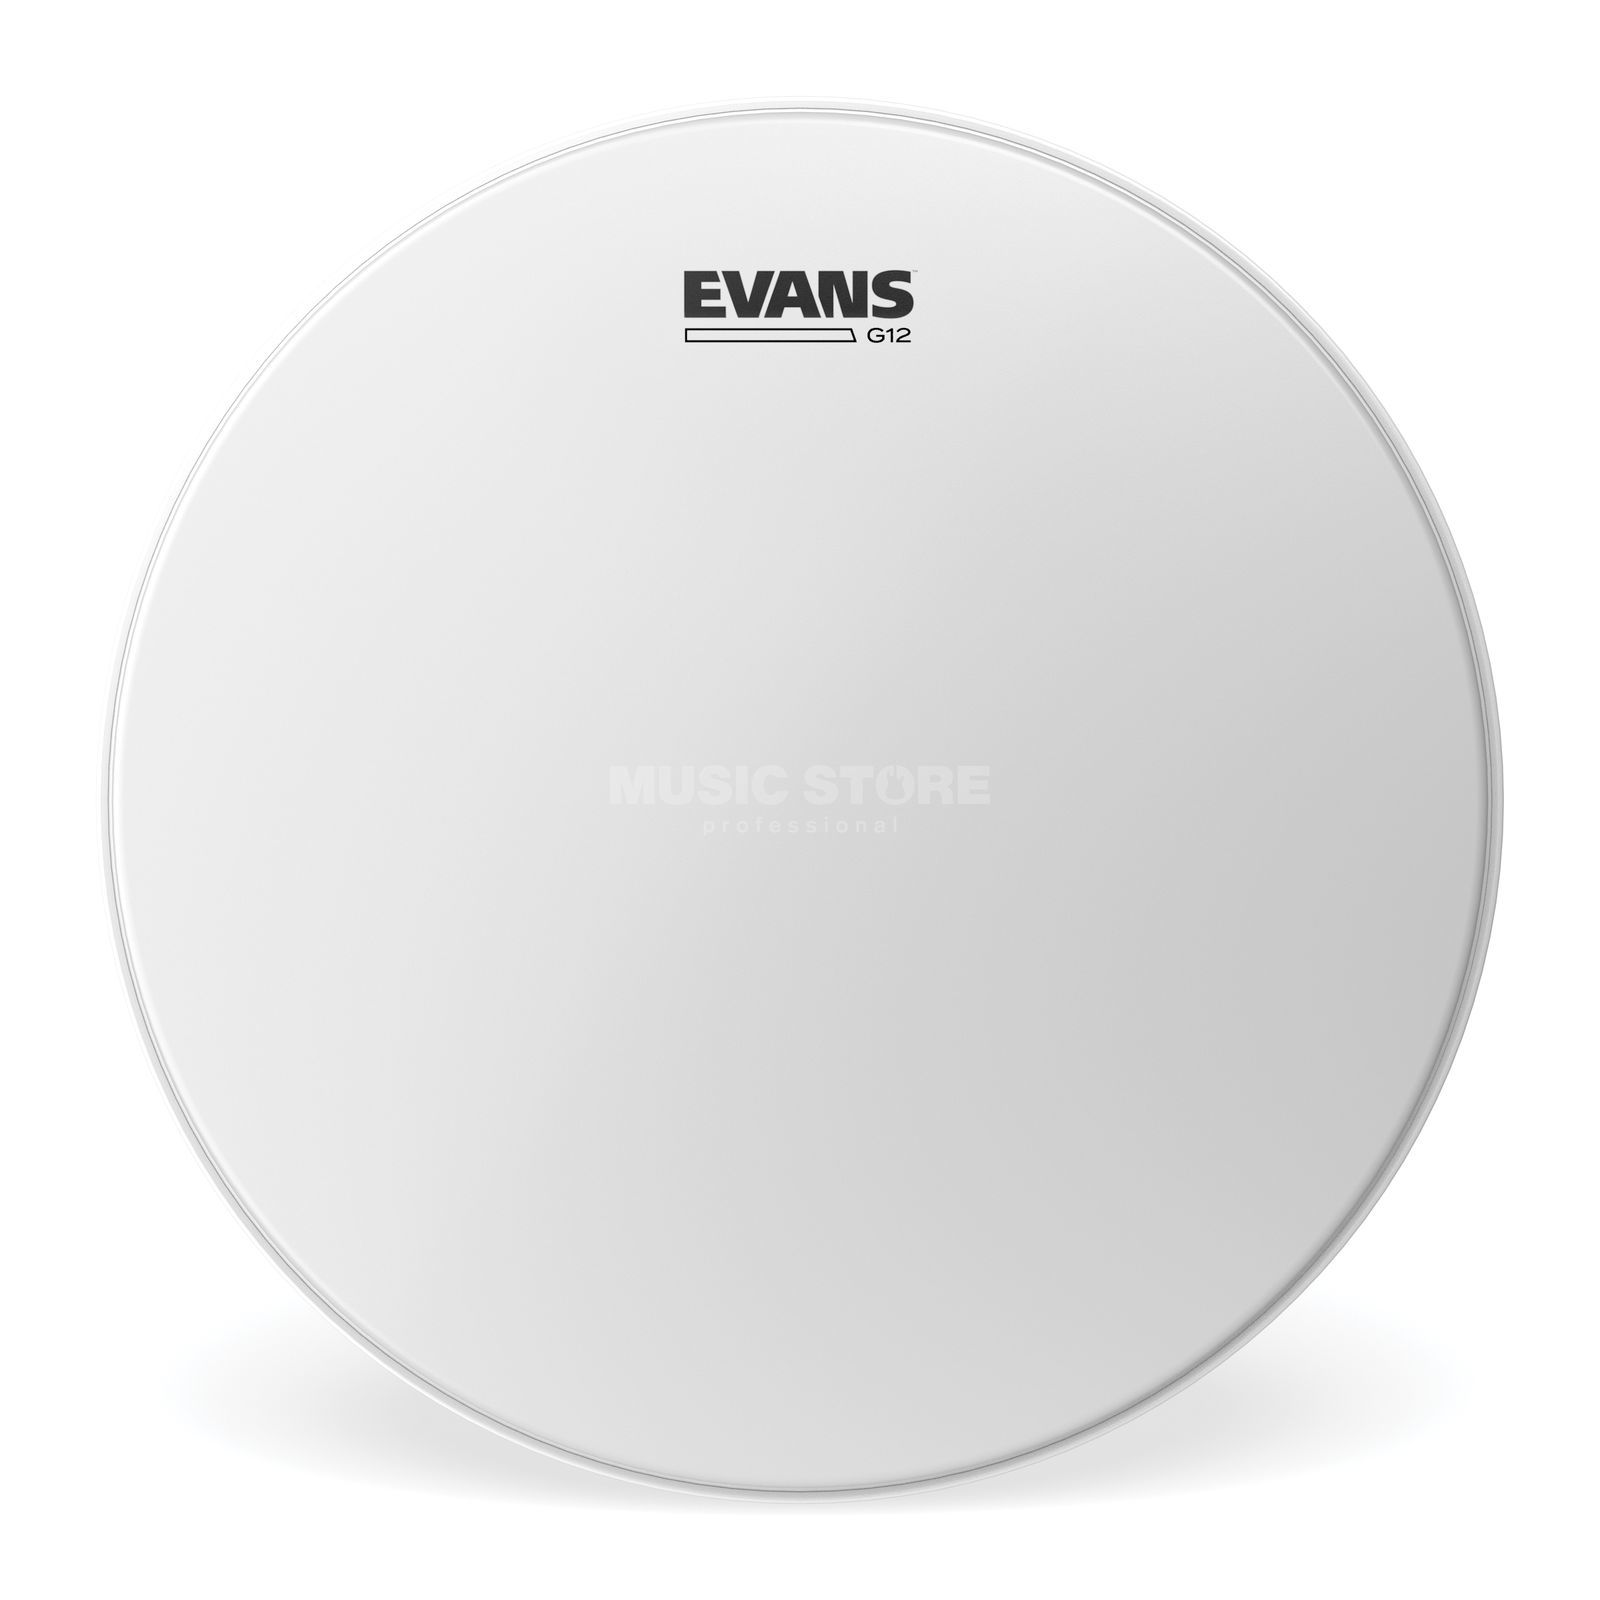 "Evans G12 16"" coated, B16G12, Tom Batter Produktbild"